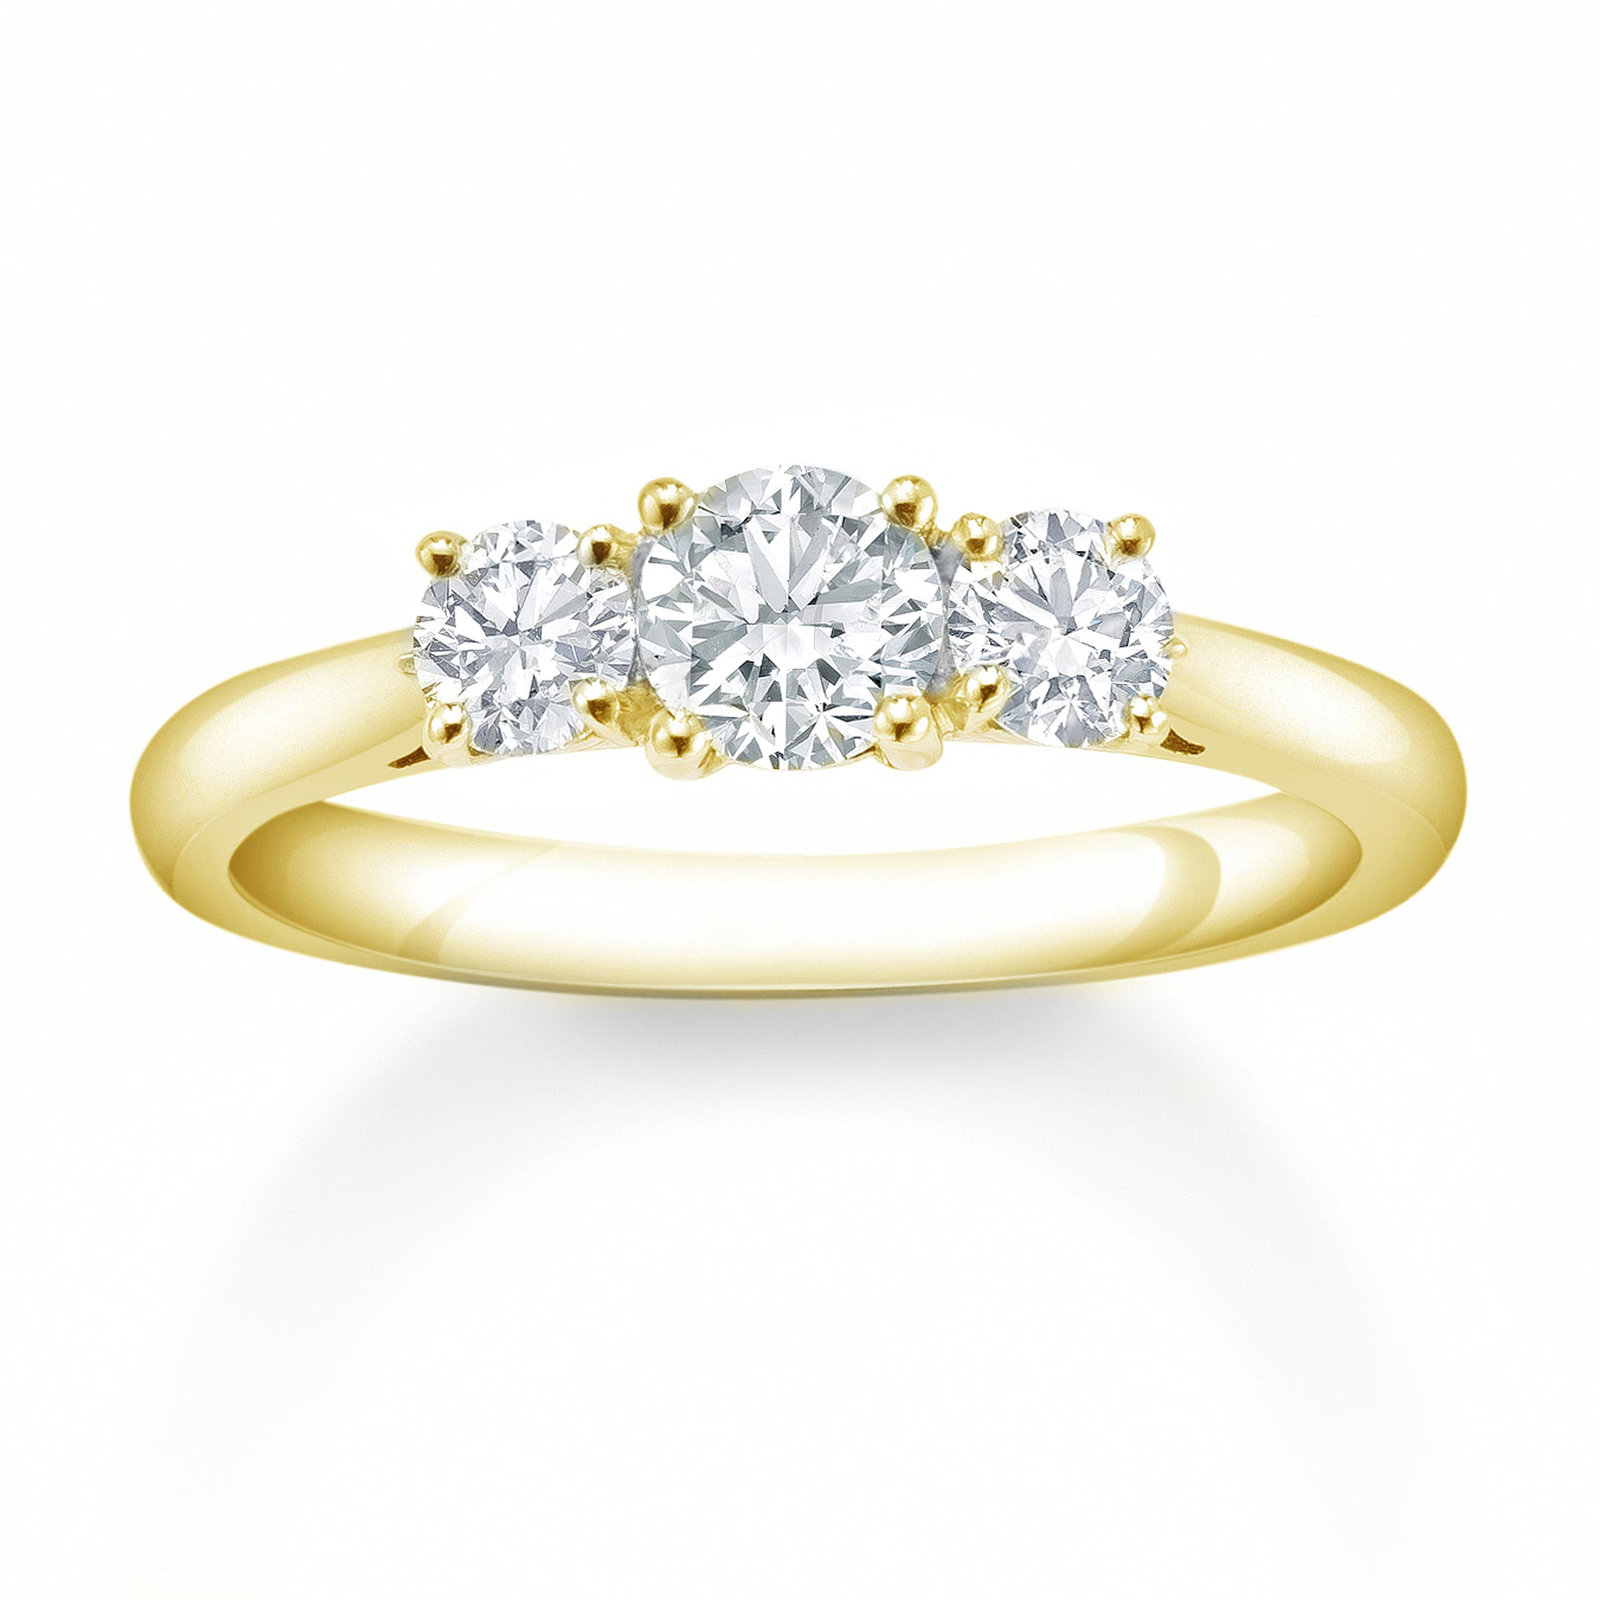 Mappin & Webb 18 Carat Yellow Gold 0.75 Carat 3 Stone Claw Set Eternity Ring